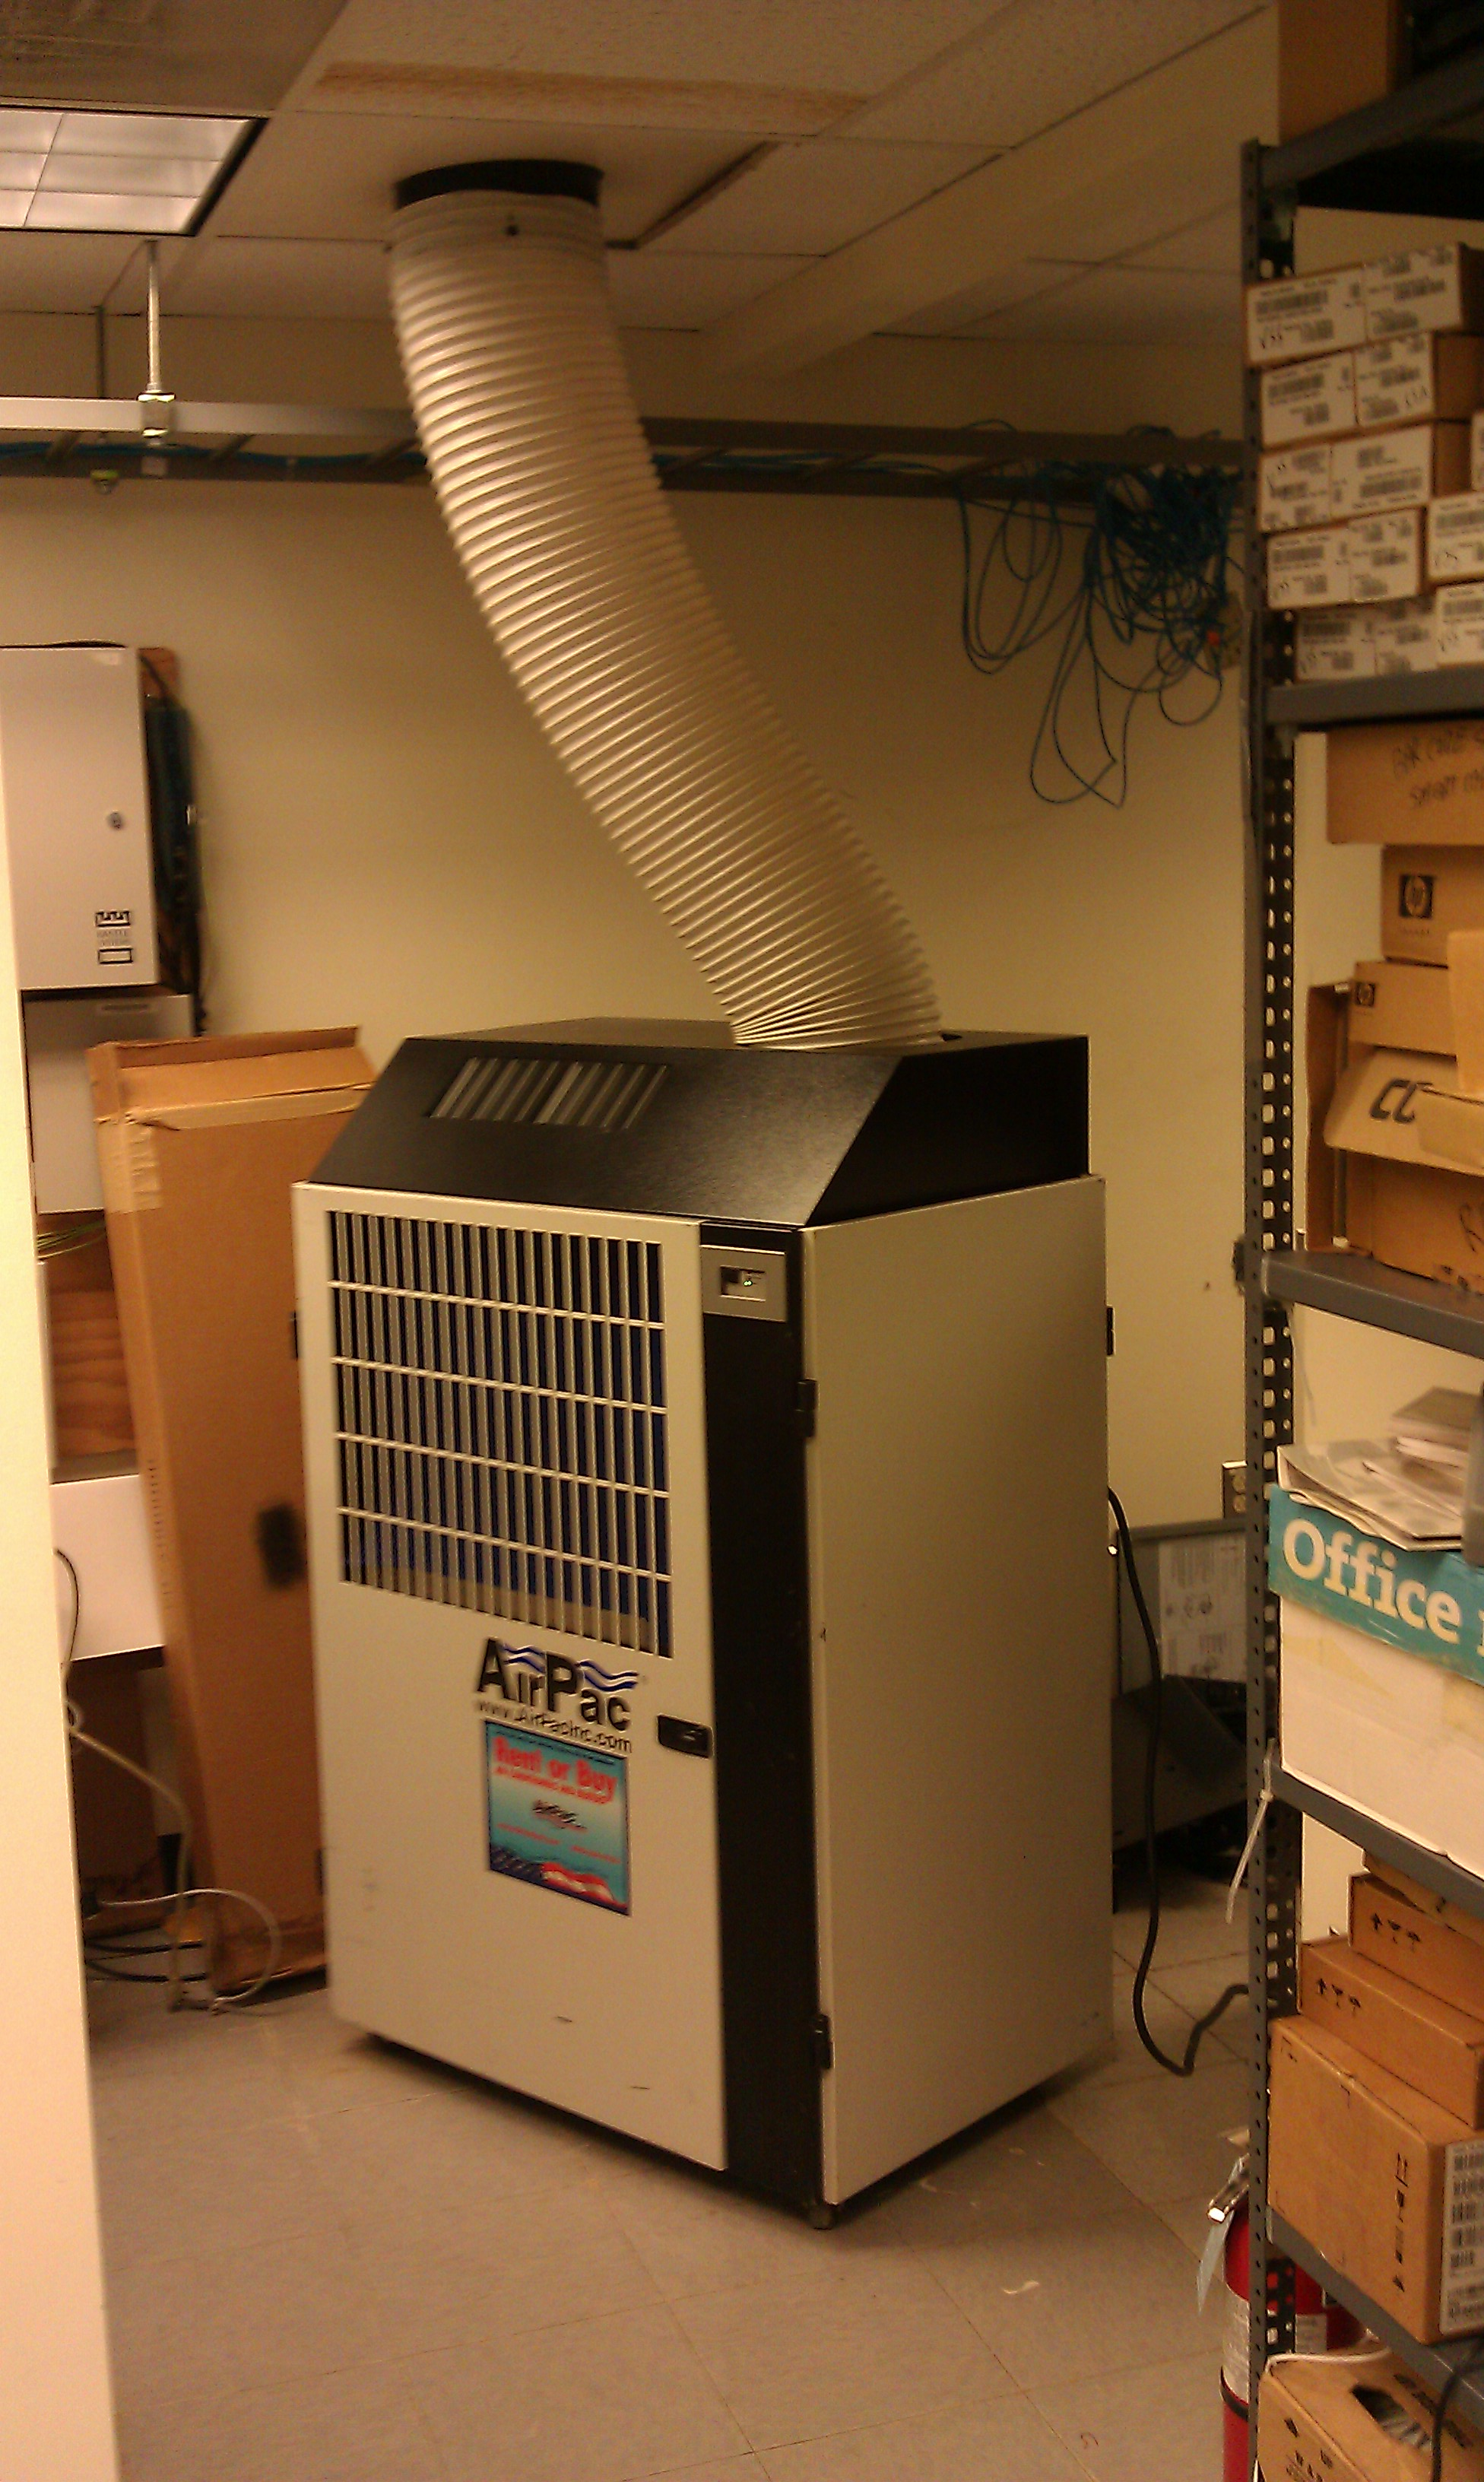 Portable Air Conditioner - Low Cost Cooling Option for Server Rooms